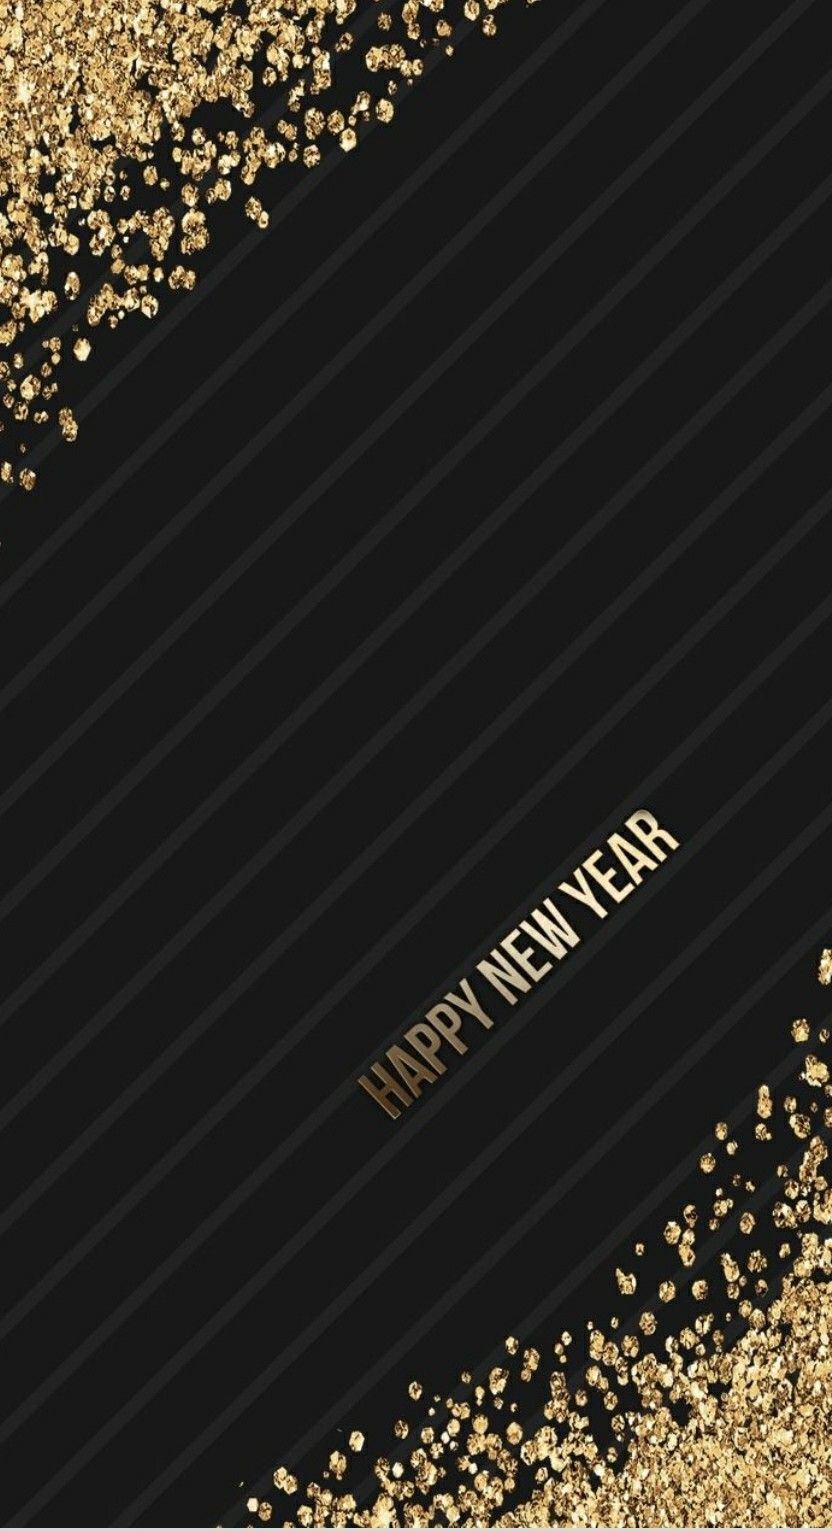 List of Cool Black Wallpaper Iphone Glitter New Years for iPhone XS Free